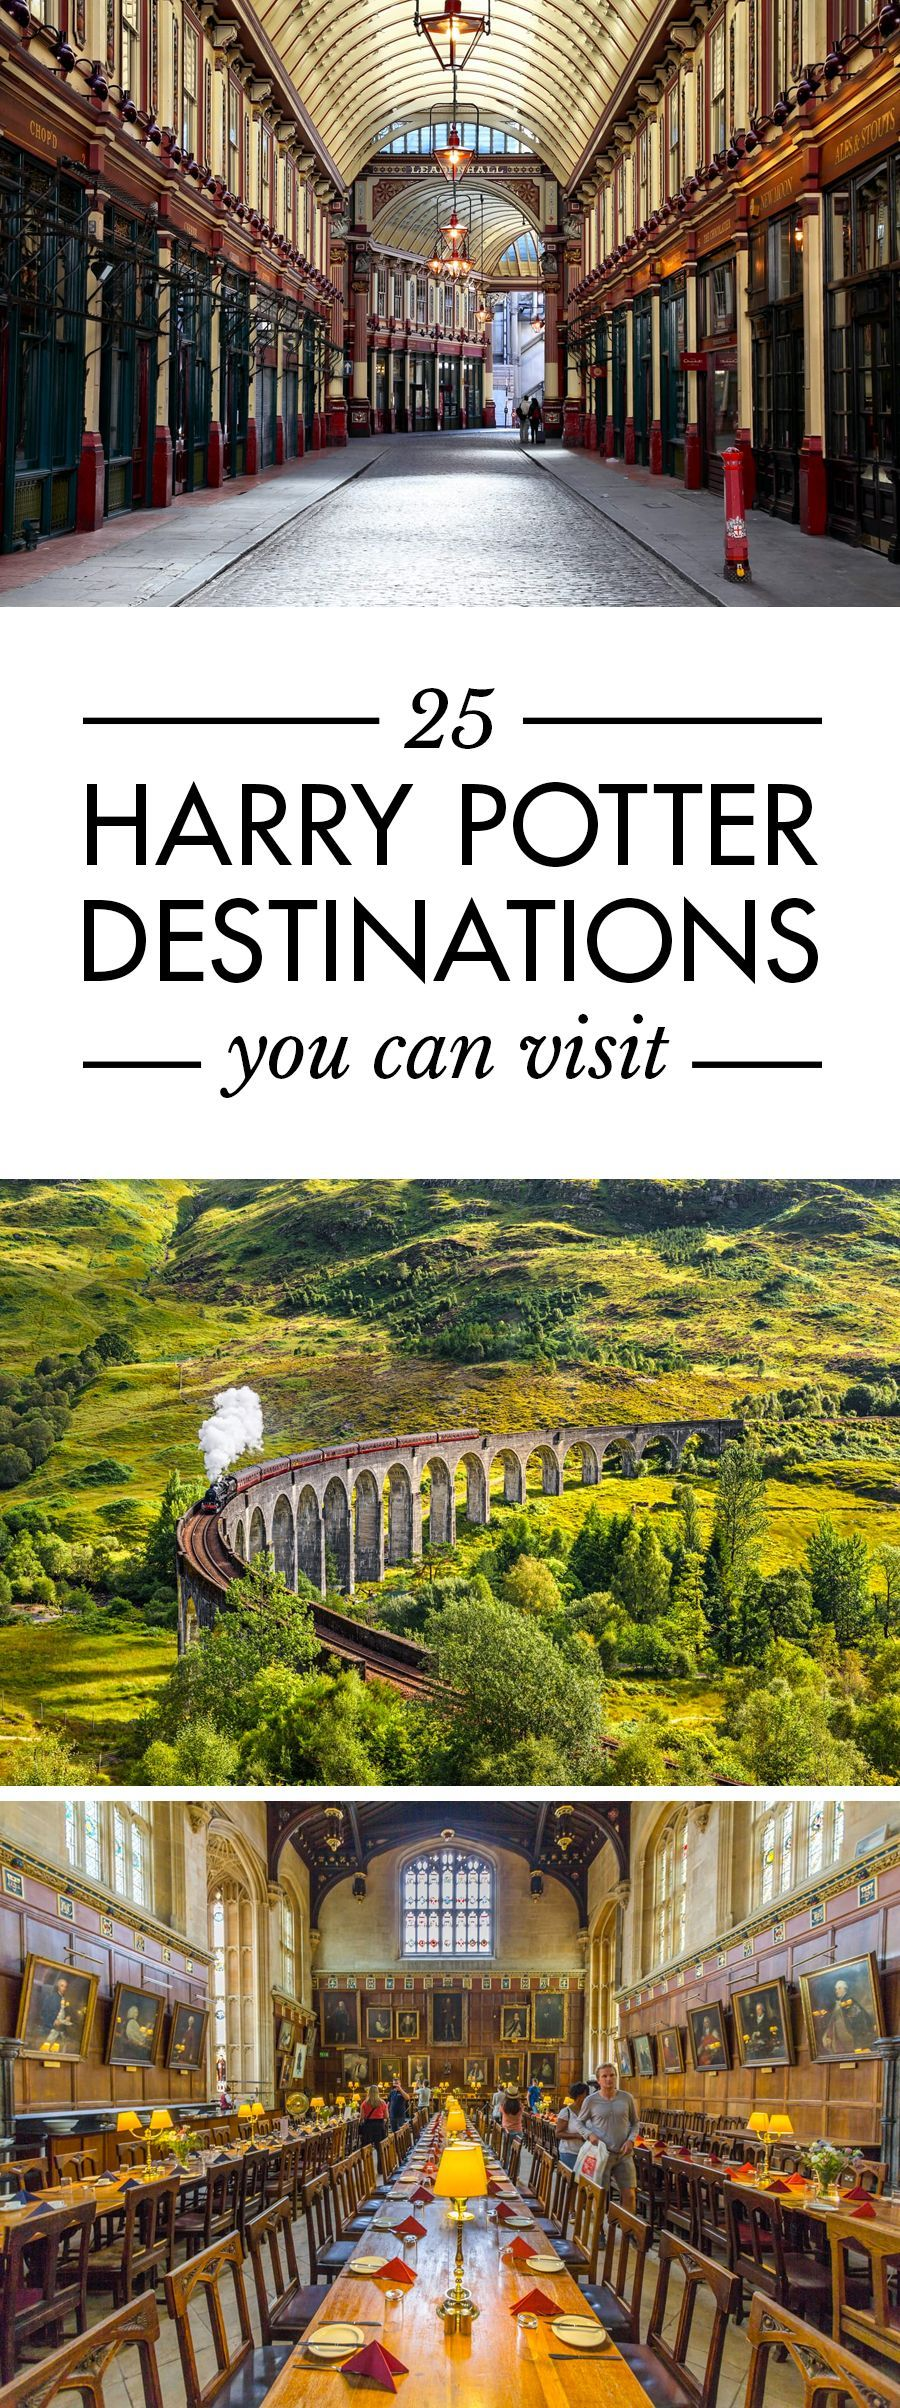 25 Harry Potter Destinations You Can Visit in Real Life | Road Affair -  25 Harry Potter Destinations You Can Visit in Real Life. The Ultimate Harry Potter Travel Bucket Li - #affair #BudgetTravel #destinations #harry #life #potter #Real #Road #RomanticTravel #ShoppingTravel #TravelBucketLists #visit